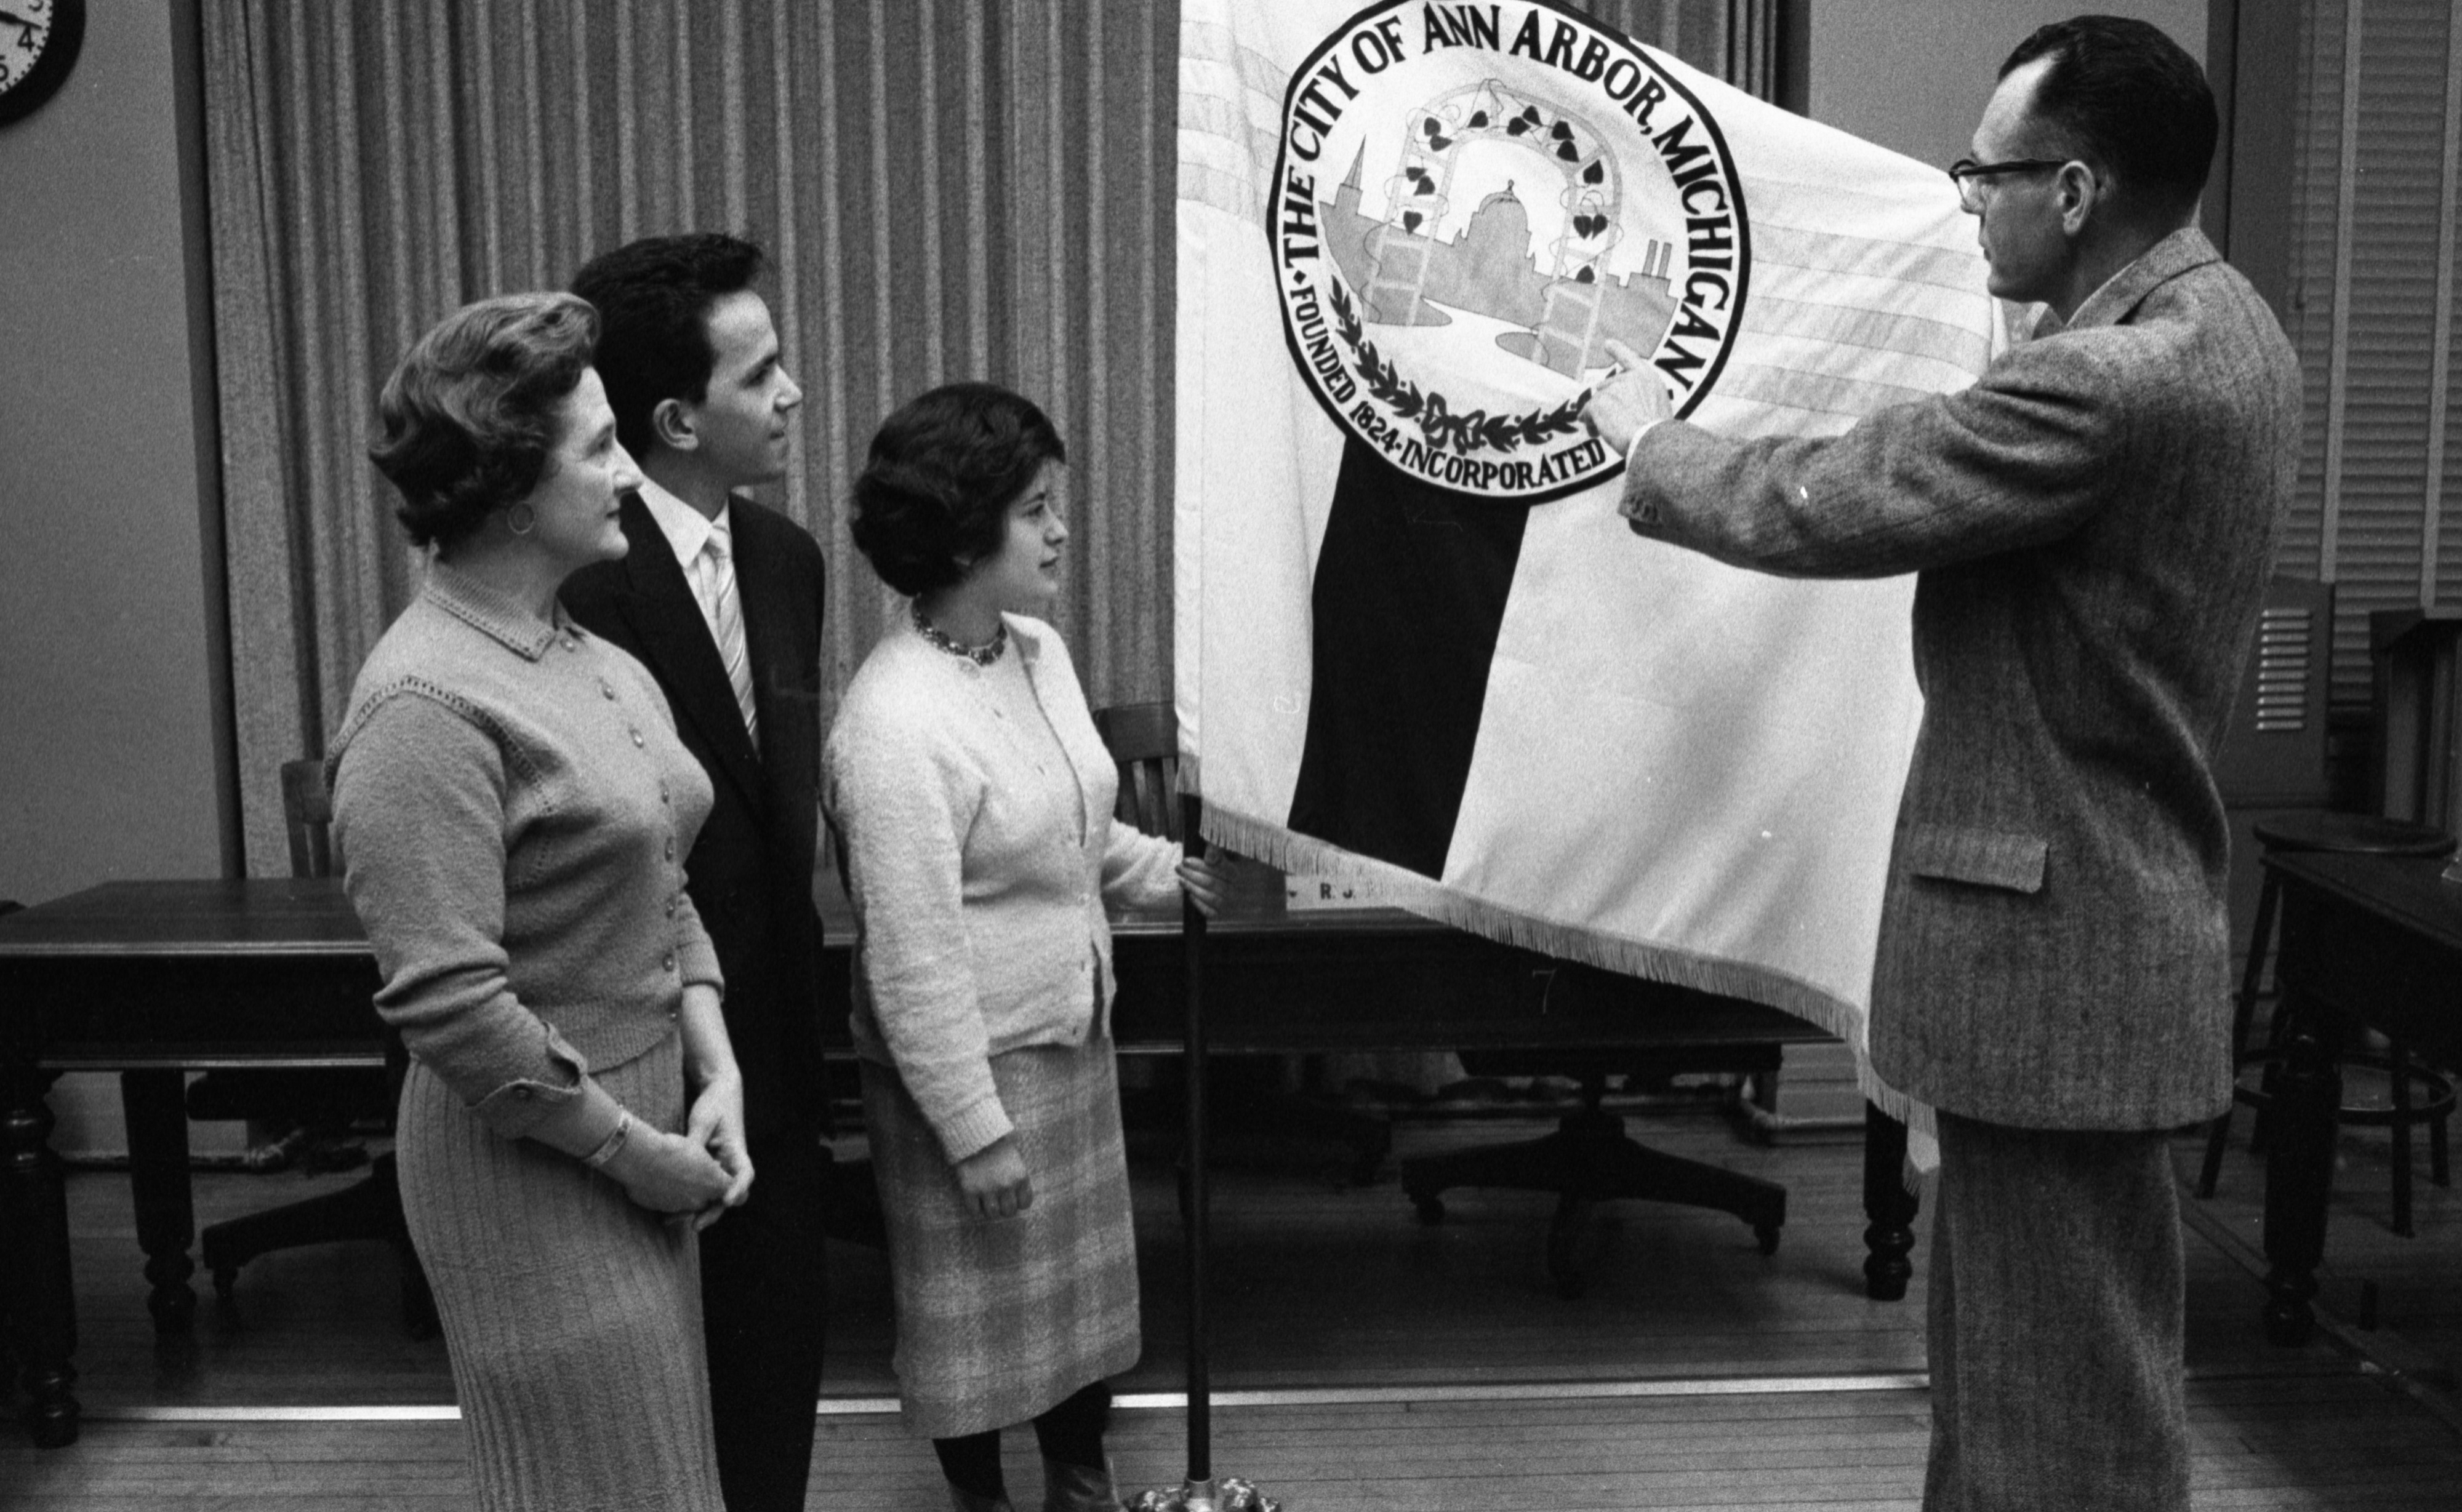 Mayor Pro-Tem, Russell J. Burns Shows City Flag To UM International Students Visiting City Hall, March 1, 1960 image